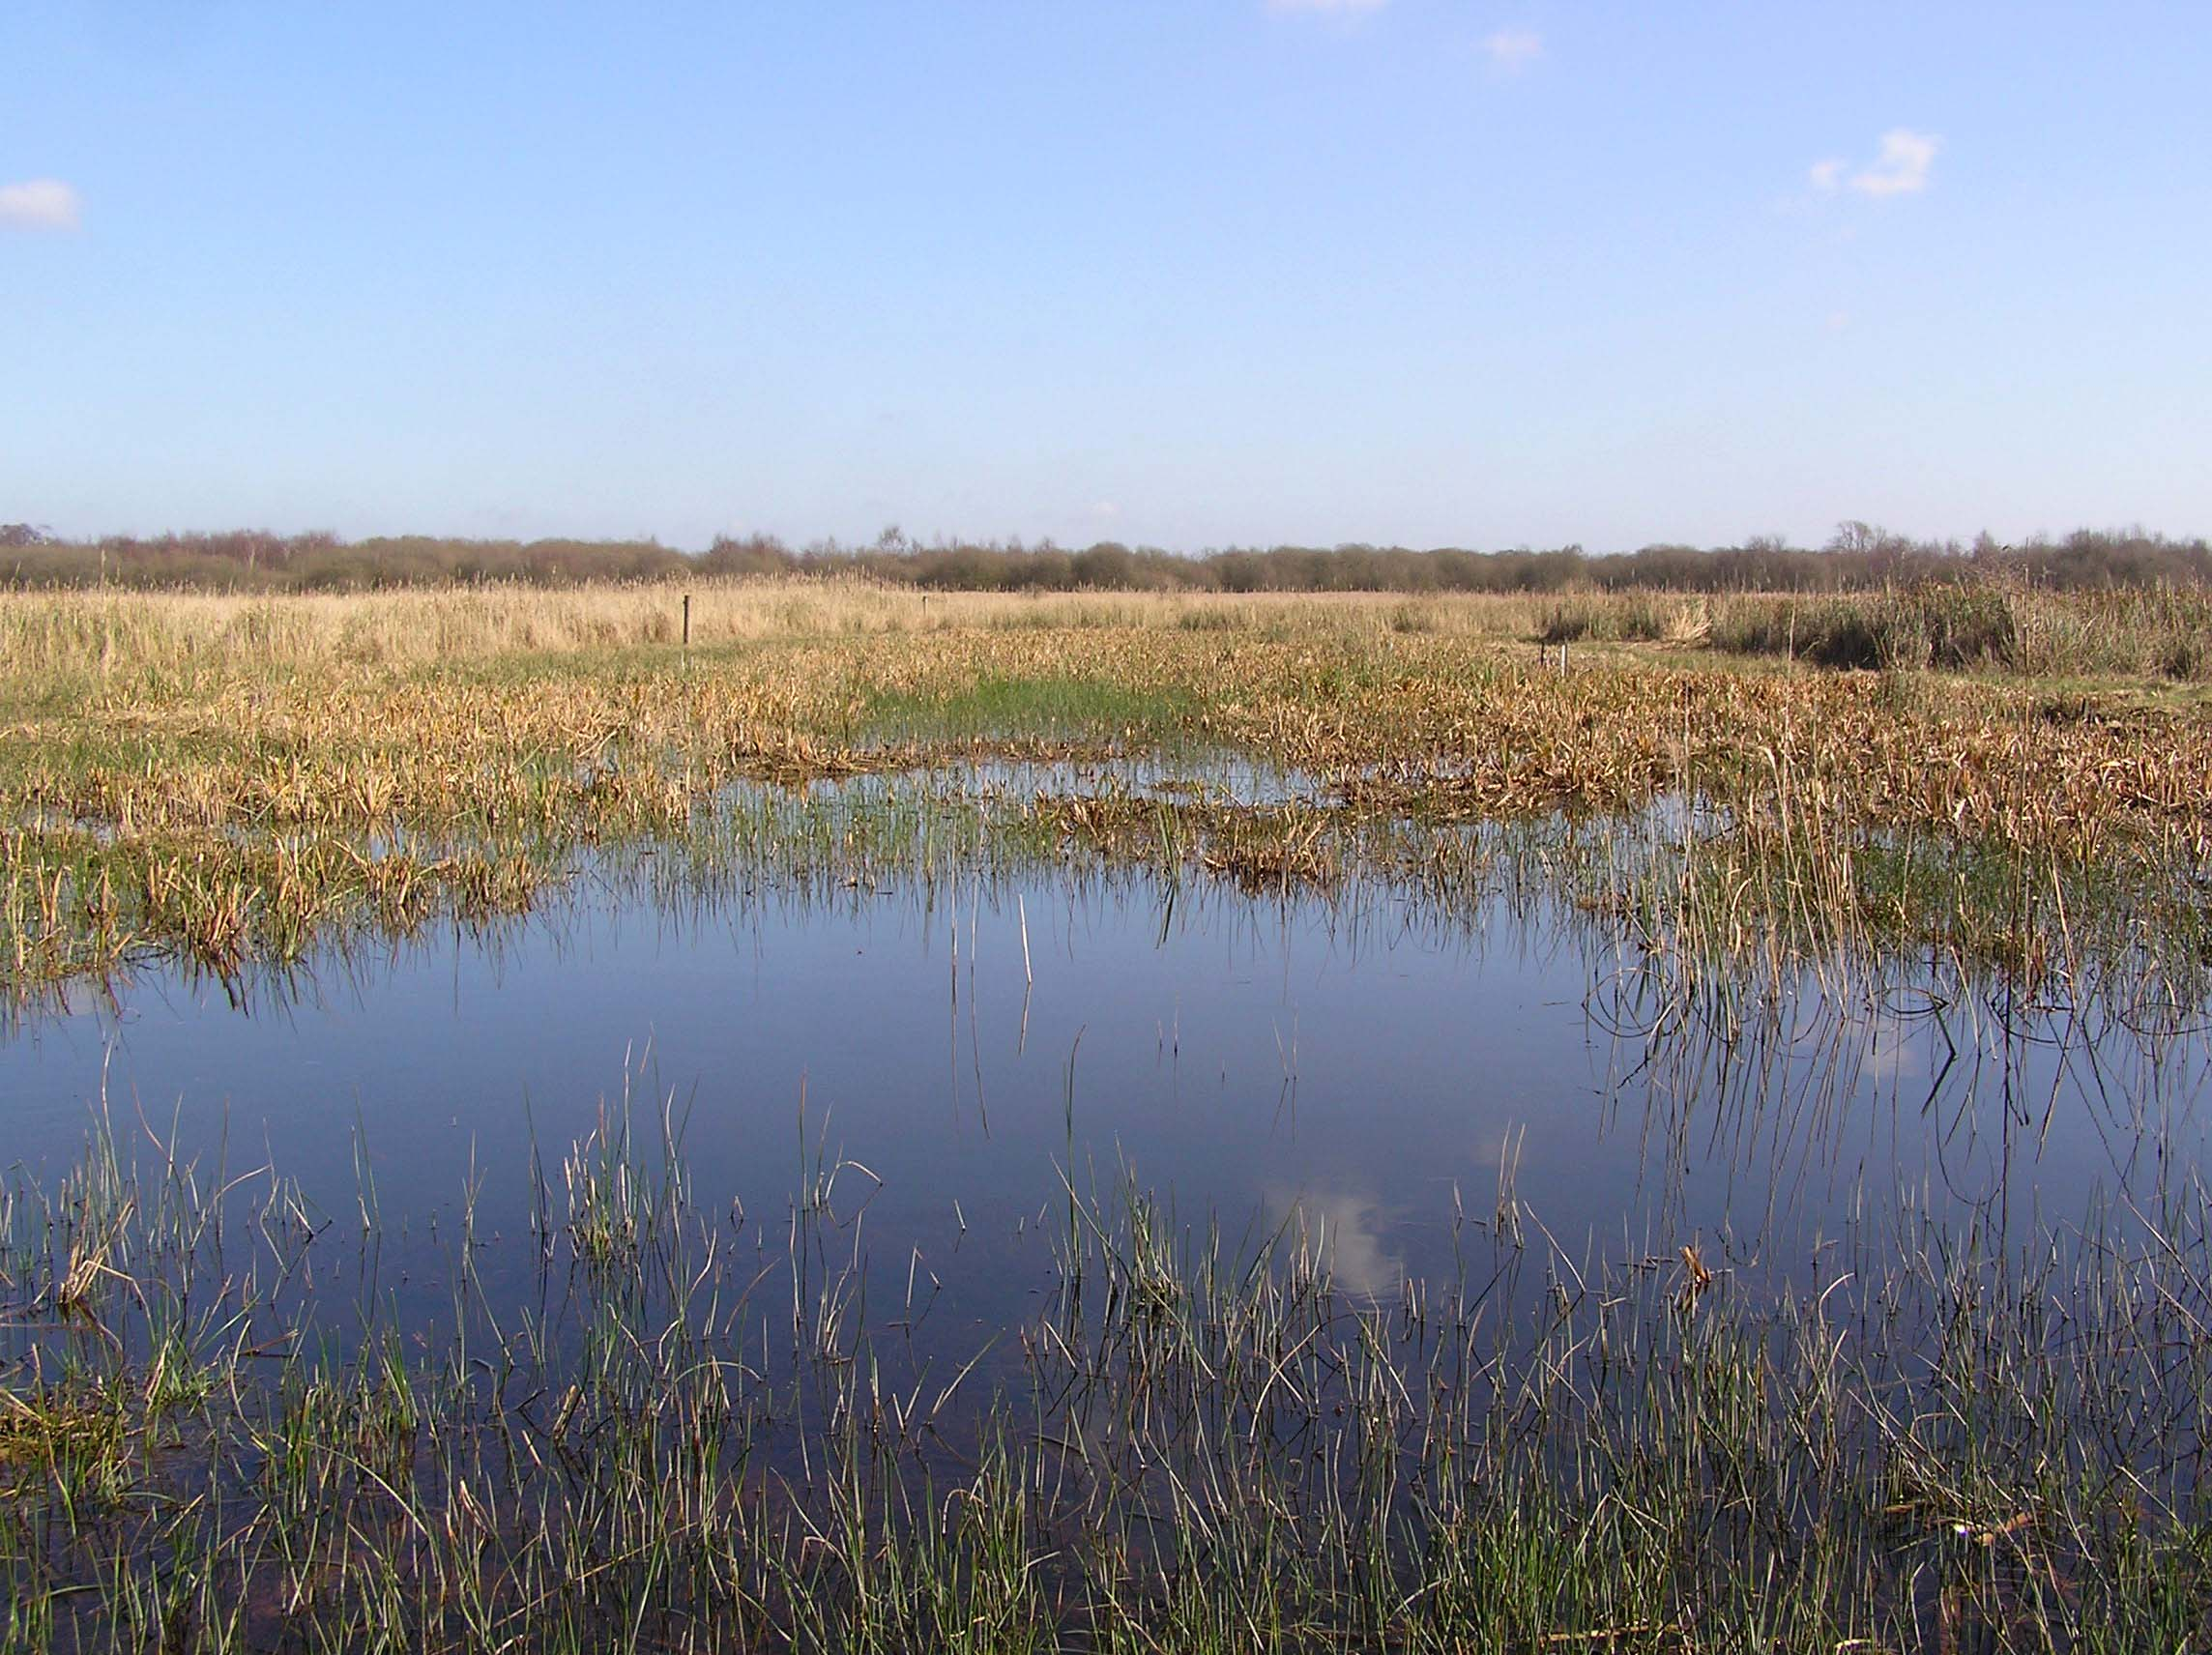 Extensive winter flooding on Redgrave & Lopham Fen after borehole closure